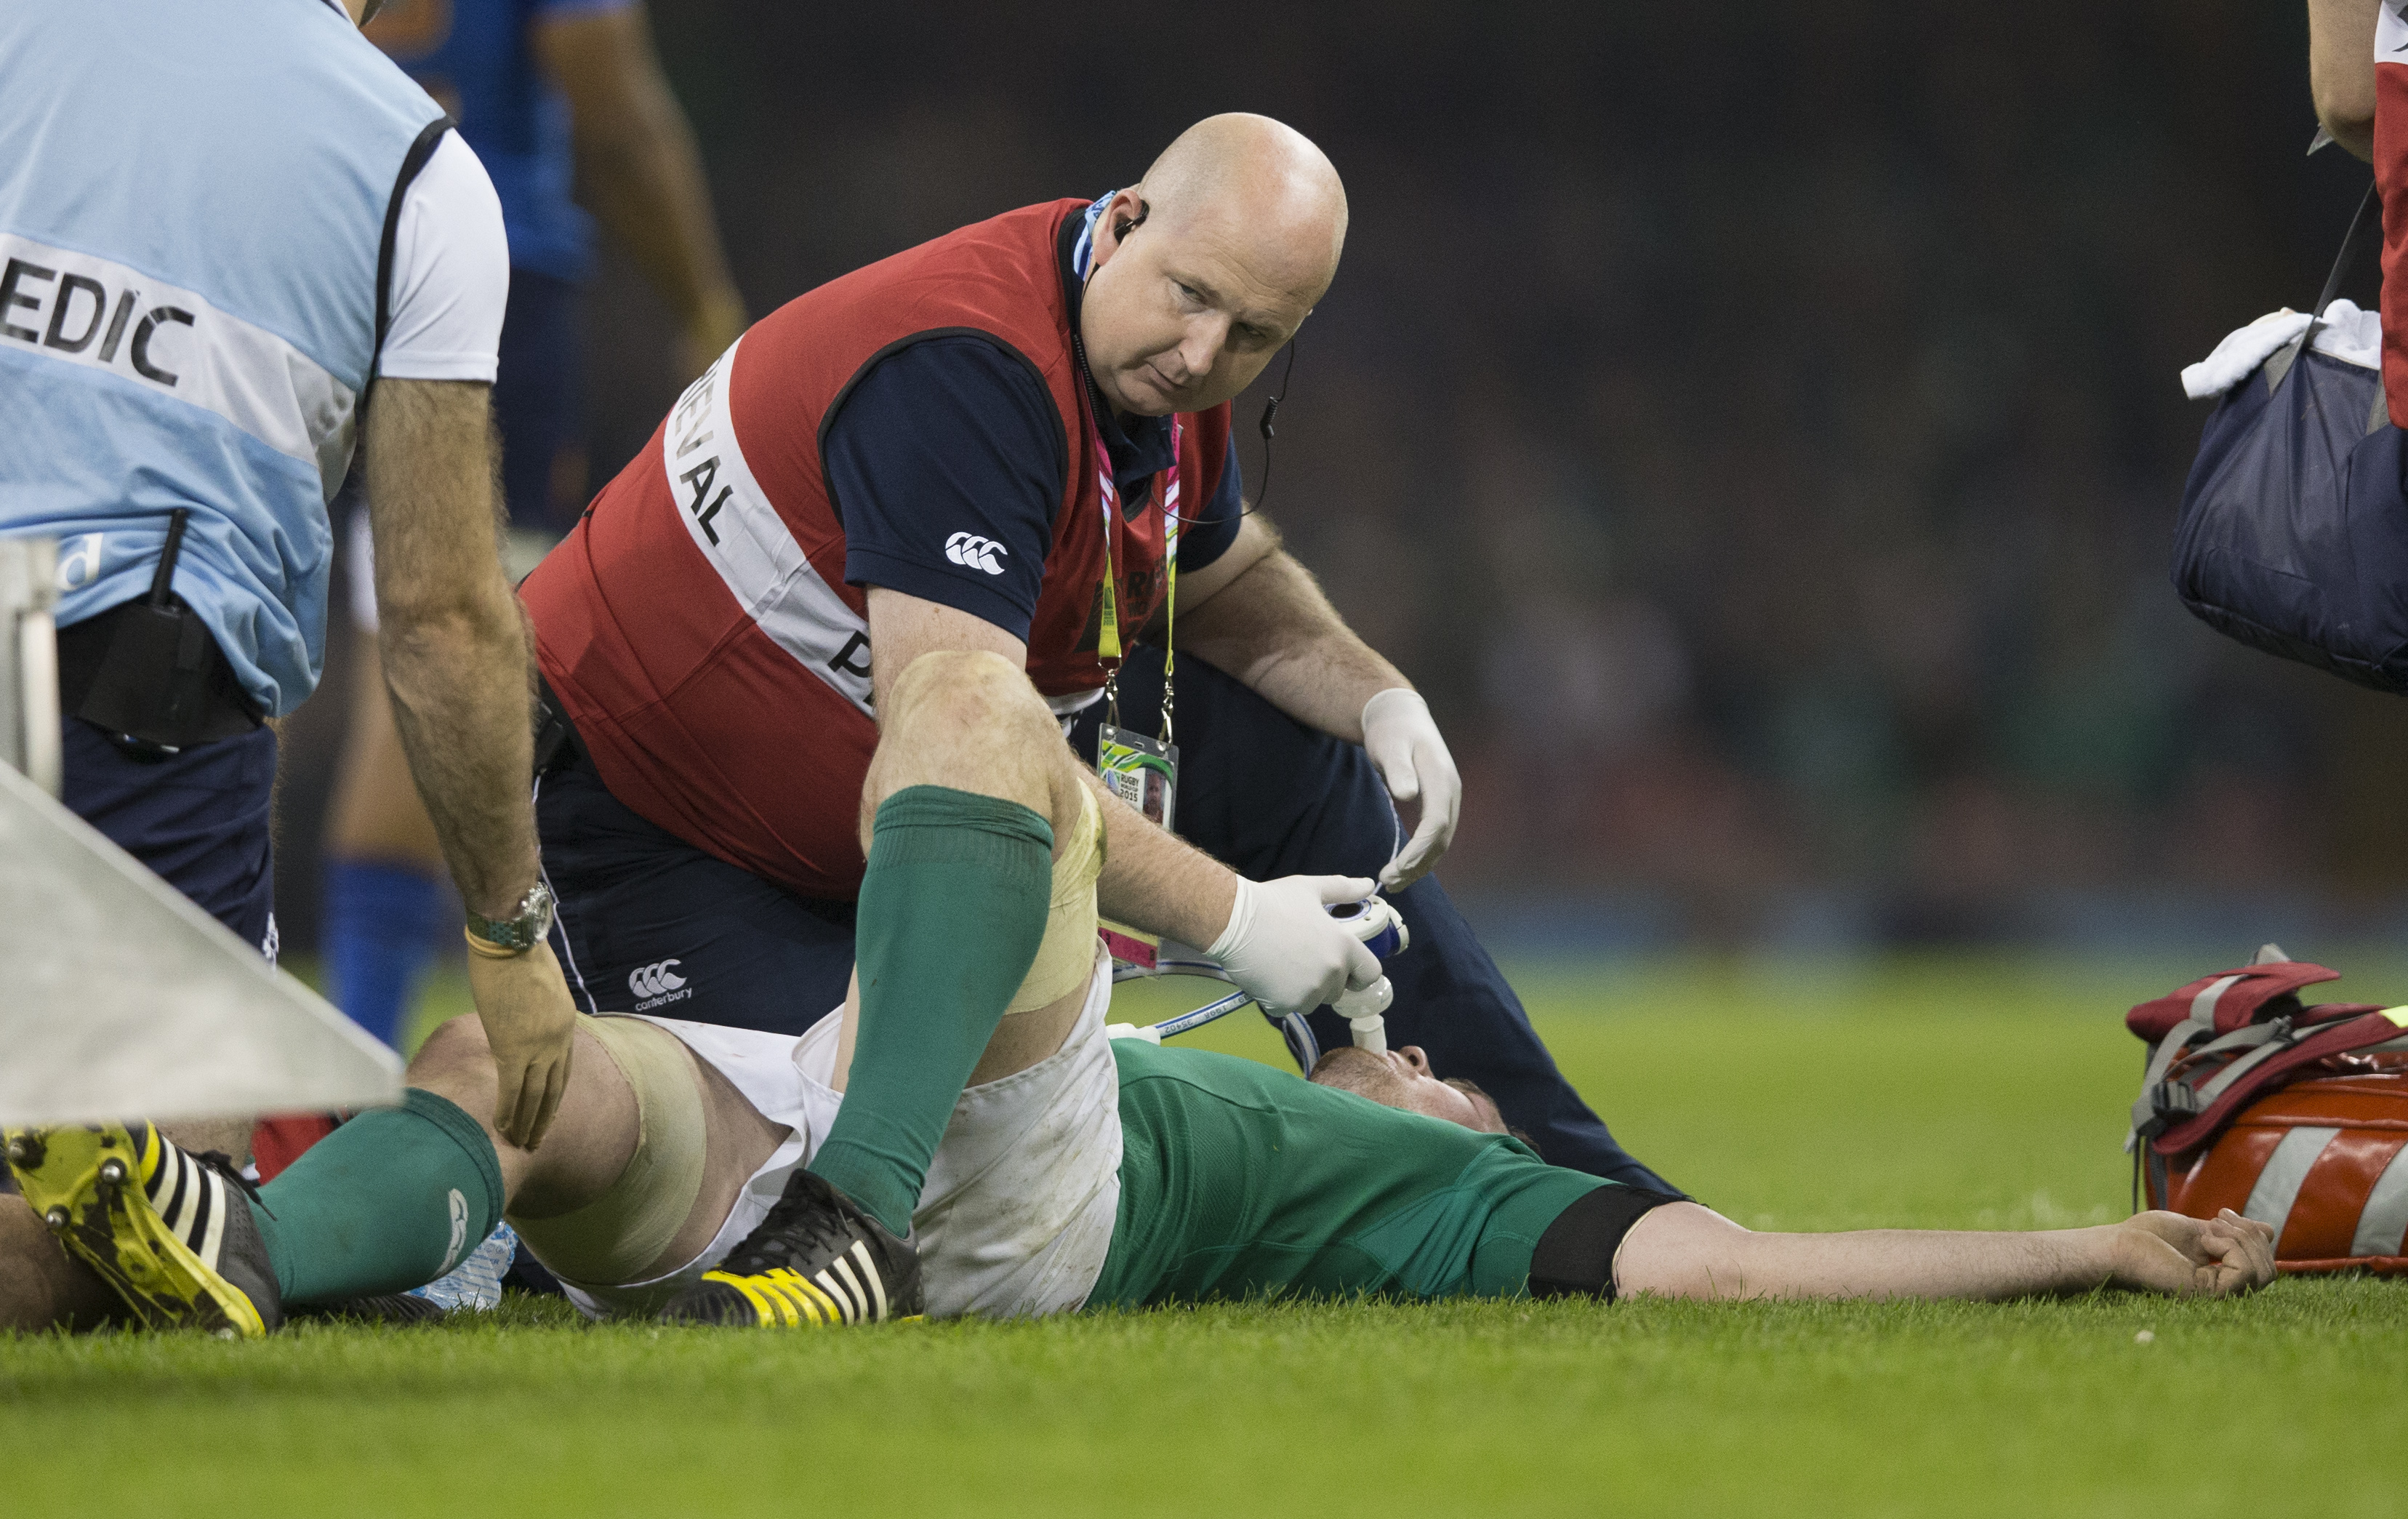 Rugby World Cup: Teams low on gas after brutal pool phase